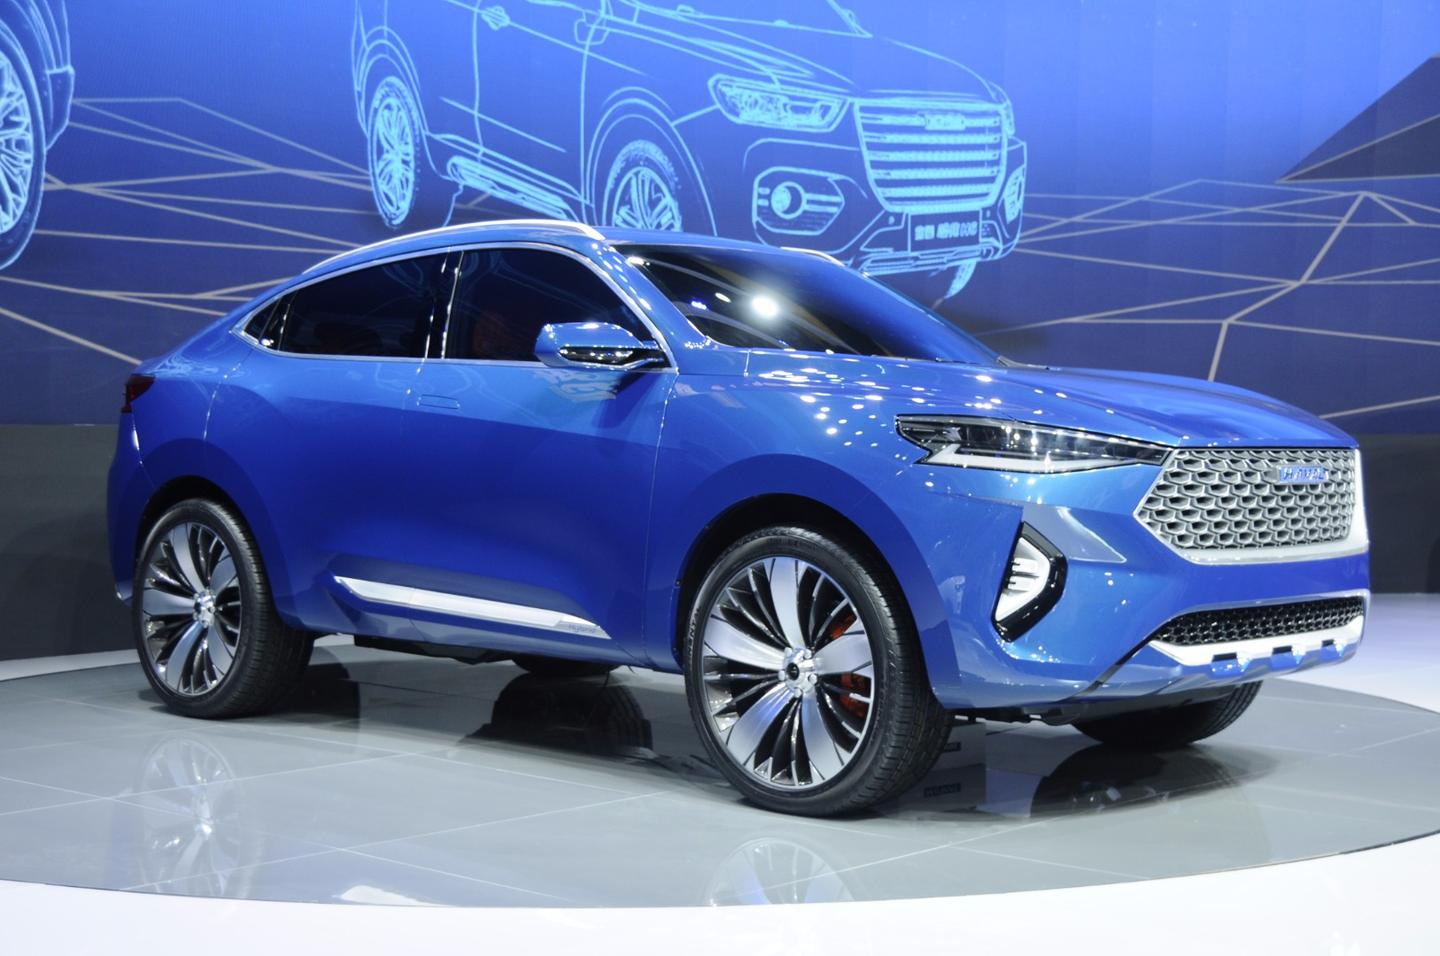 The Haval HB-03 concept is a bit derivative in its styling